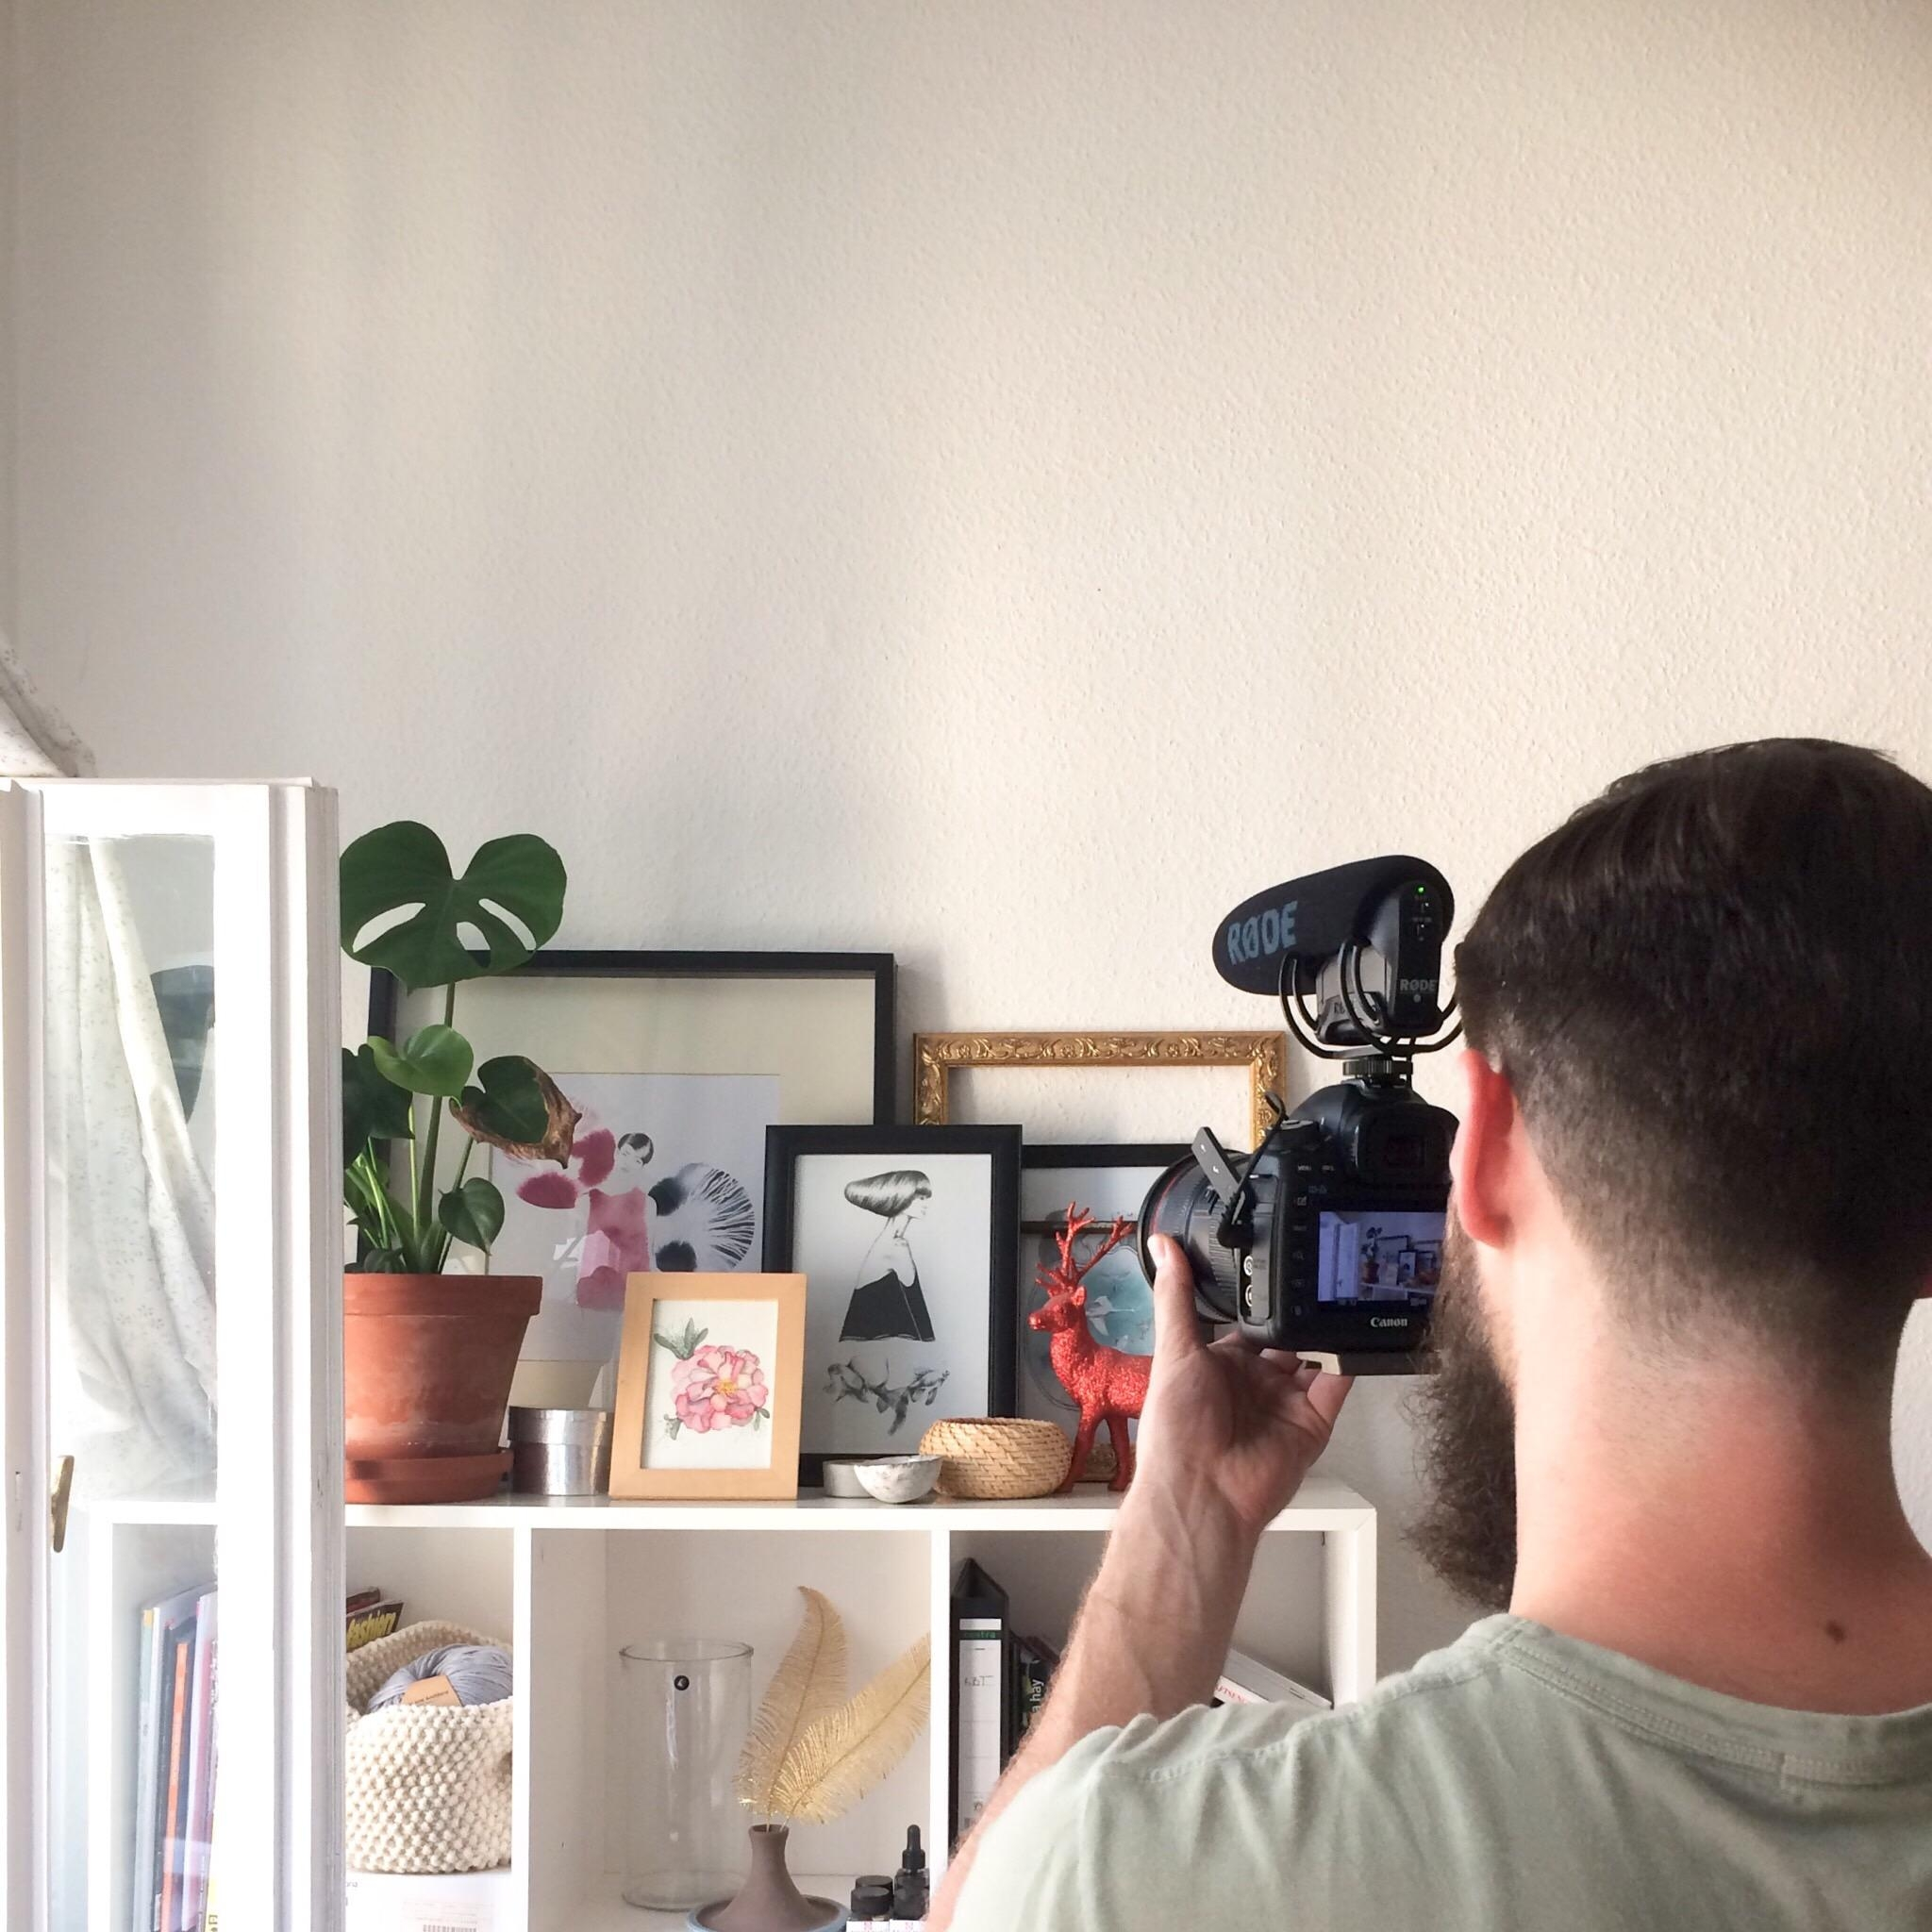 Taking a picture of some taking pictures. #homestory #kunst | mehr hier:https://www.instagram.com/youdesignme.de/